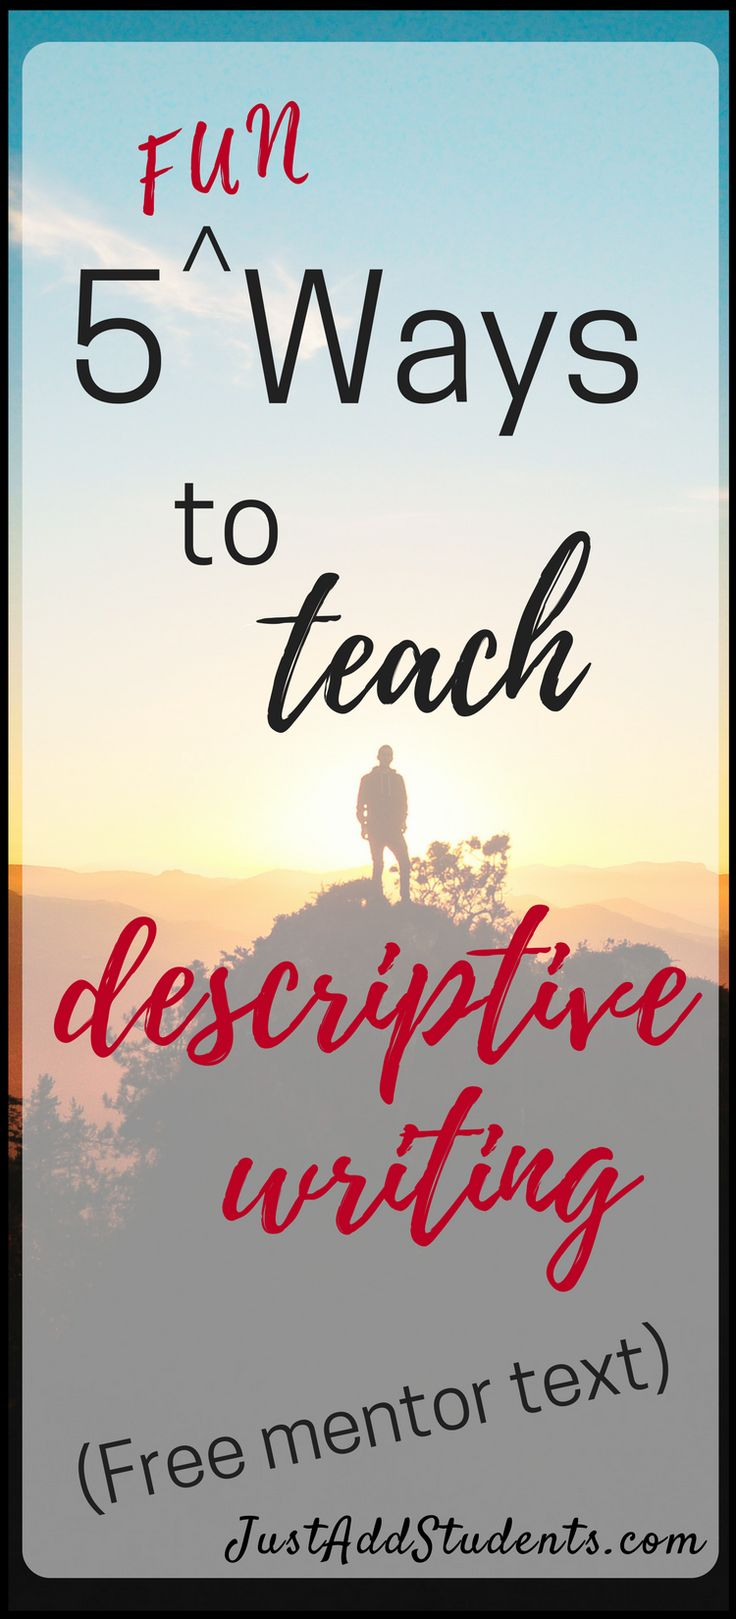 Need some fresh activities for teaching descriptive writing in middle school?  This post has 5 lessons you can use to do just that!  Five ready-to-use lessons plus a free mentor text analysis worksheet your students can use right away.  Great for writing workshop, differentiation, tutoring, and close reading.  #writing #lessons